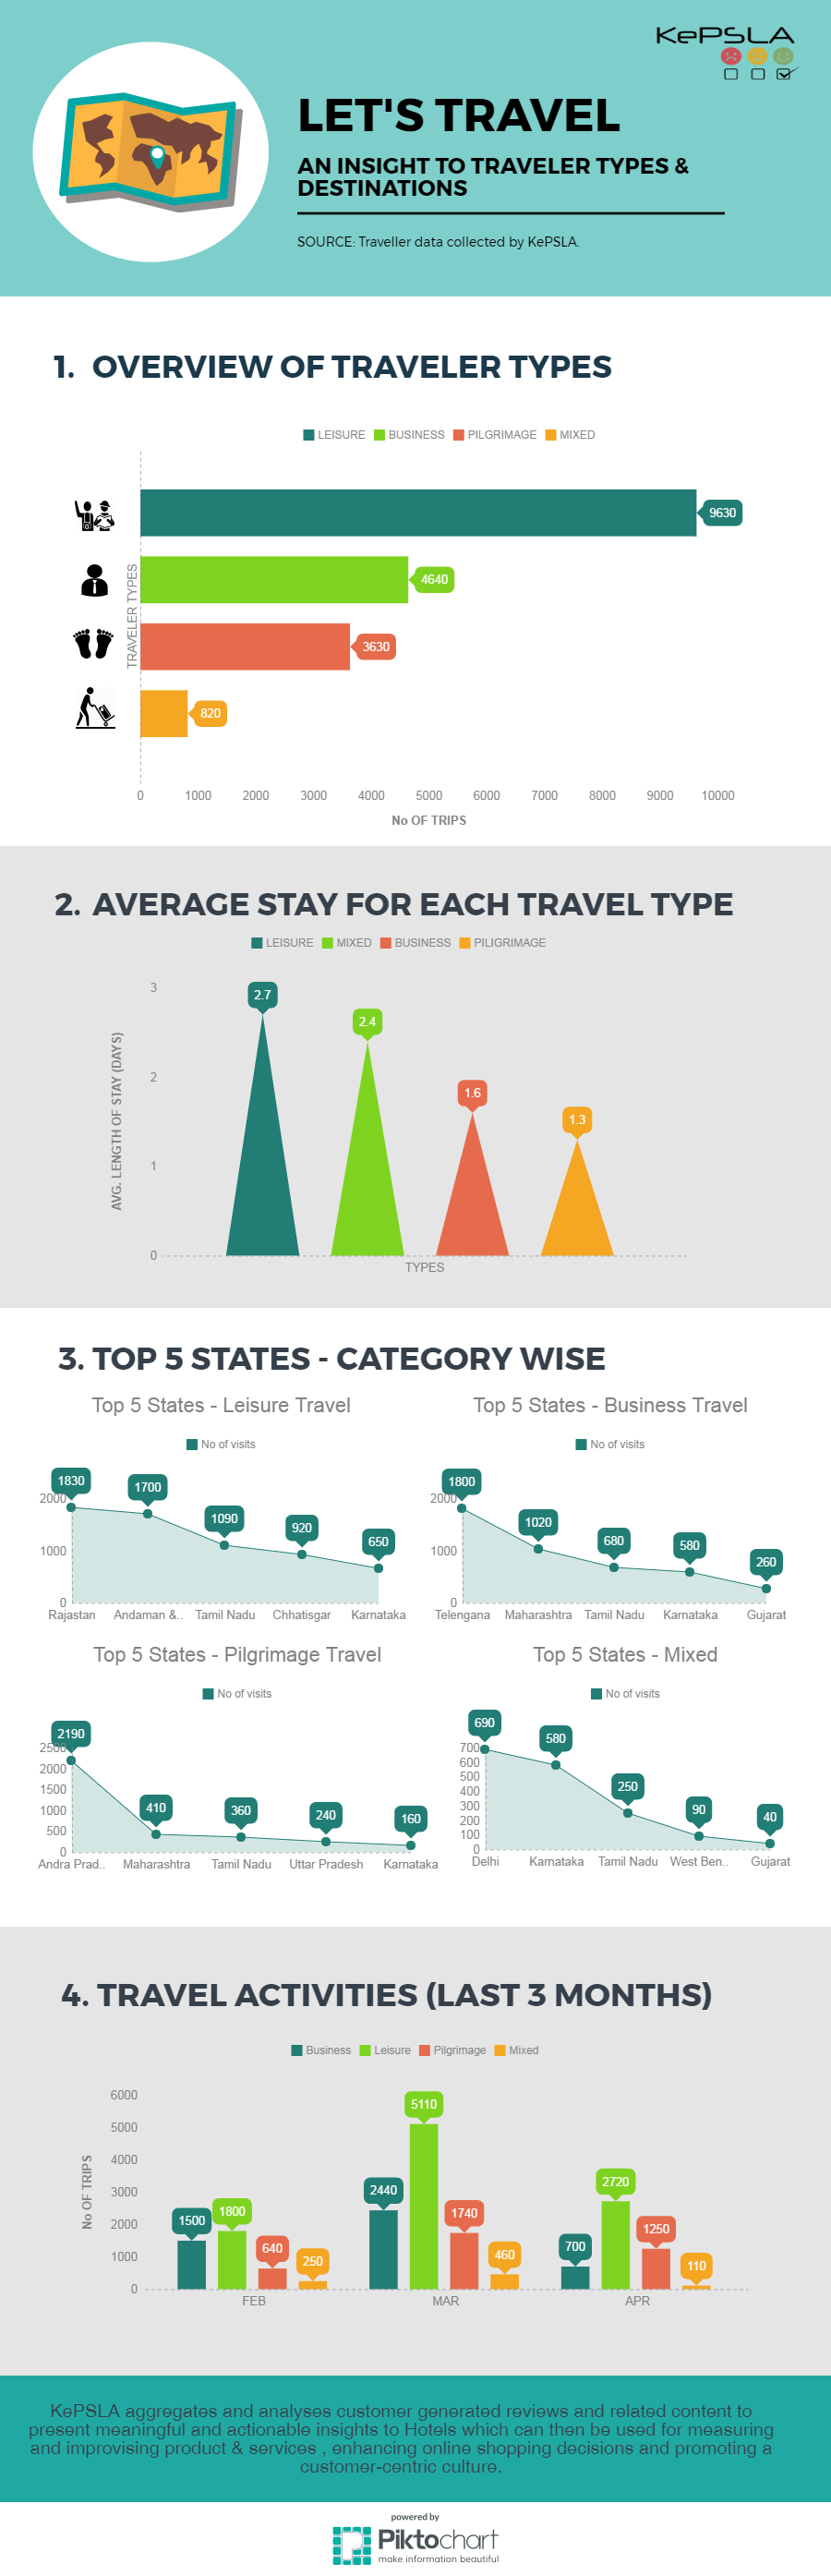 Lets-Travel-infographic-plaza